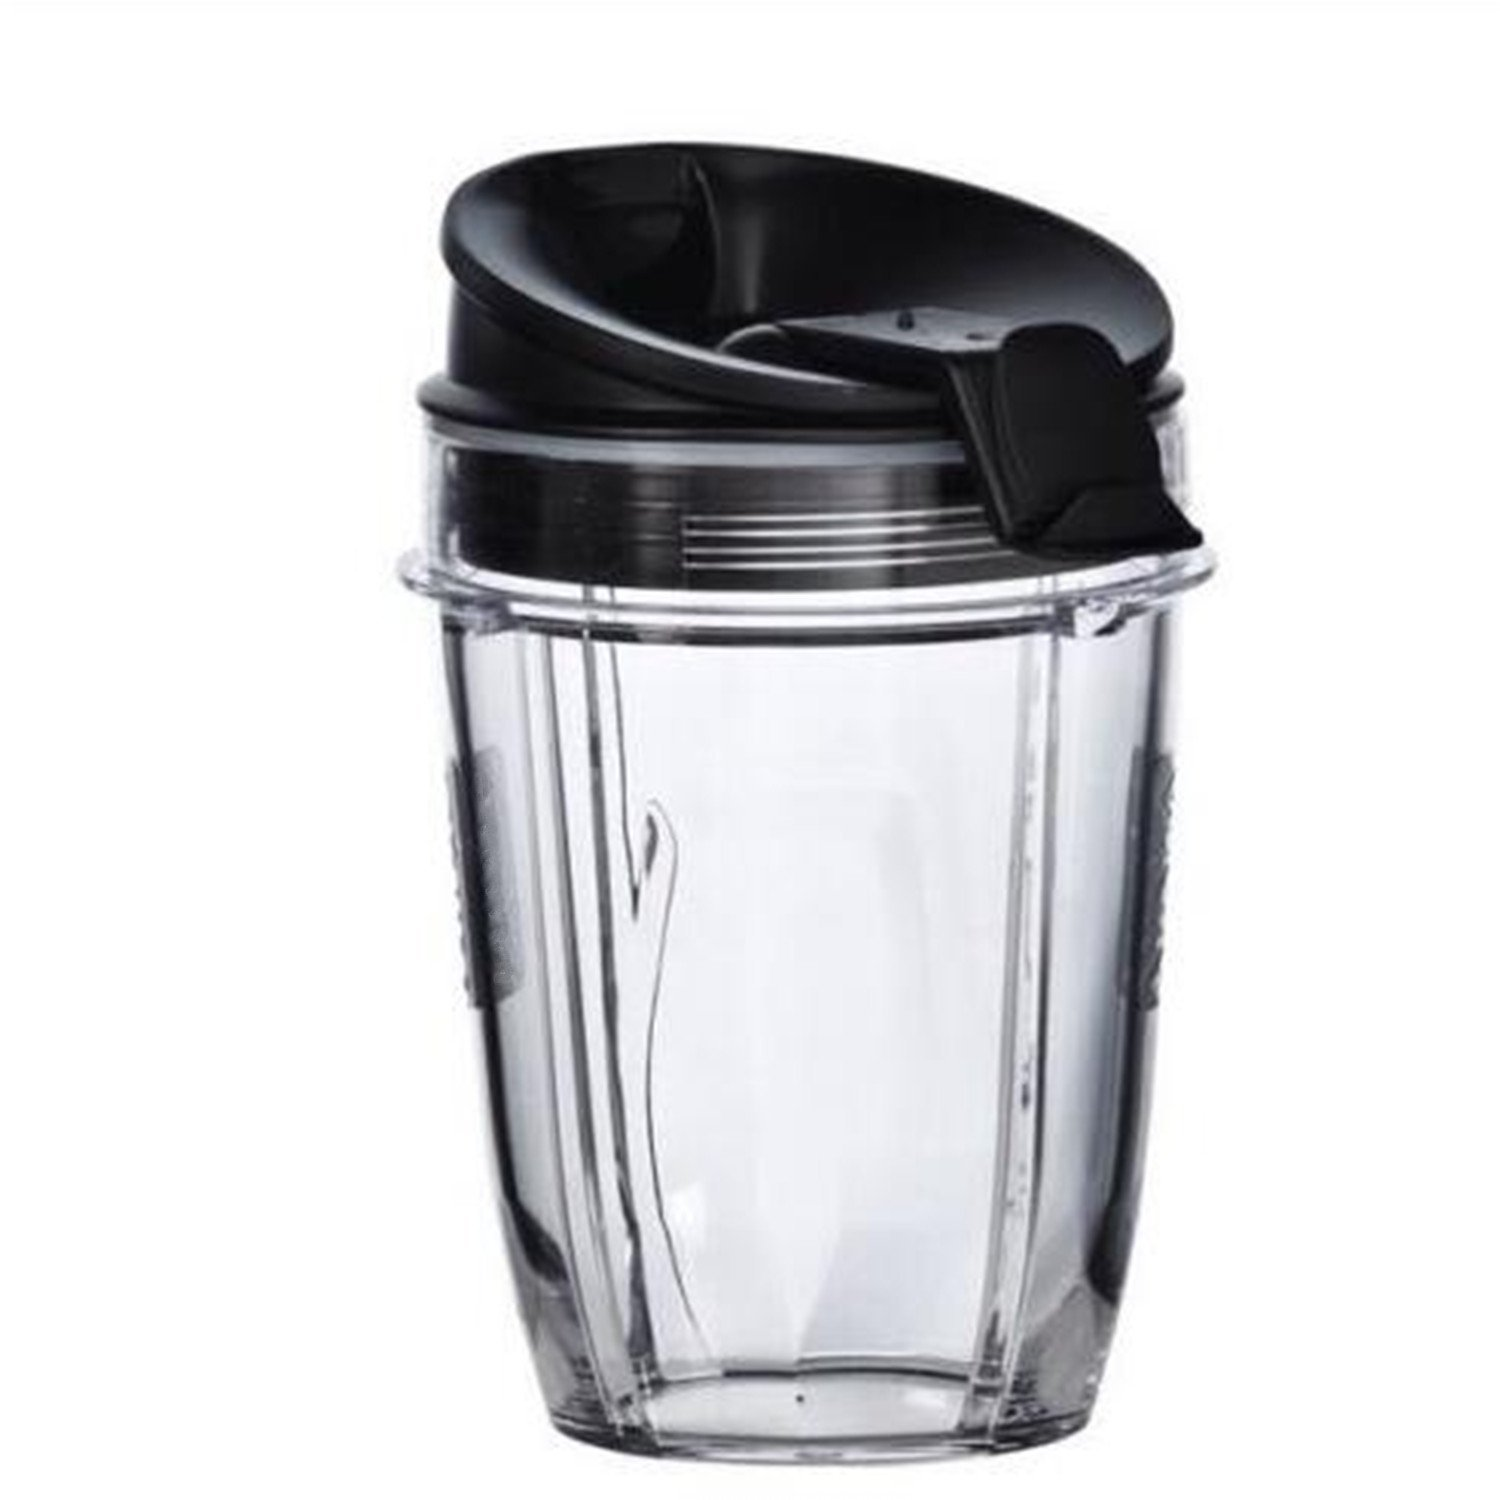 Sduck Replacement Parts for Nutri Ninja Blender, Cup with Sip and Seal Lid for 900W/1000W Auto IQ/Duo, 18 oz.